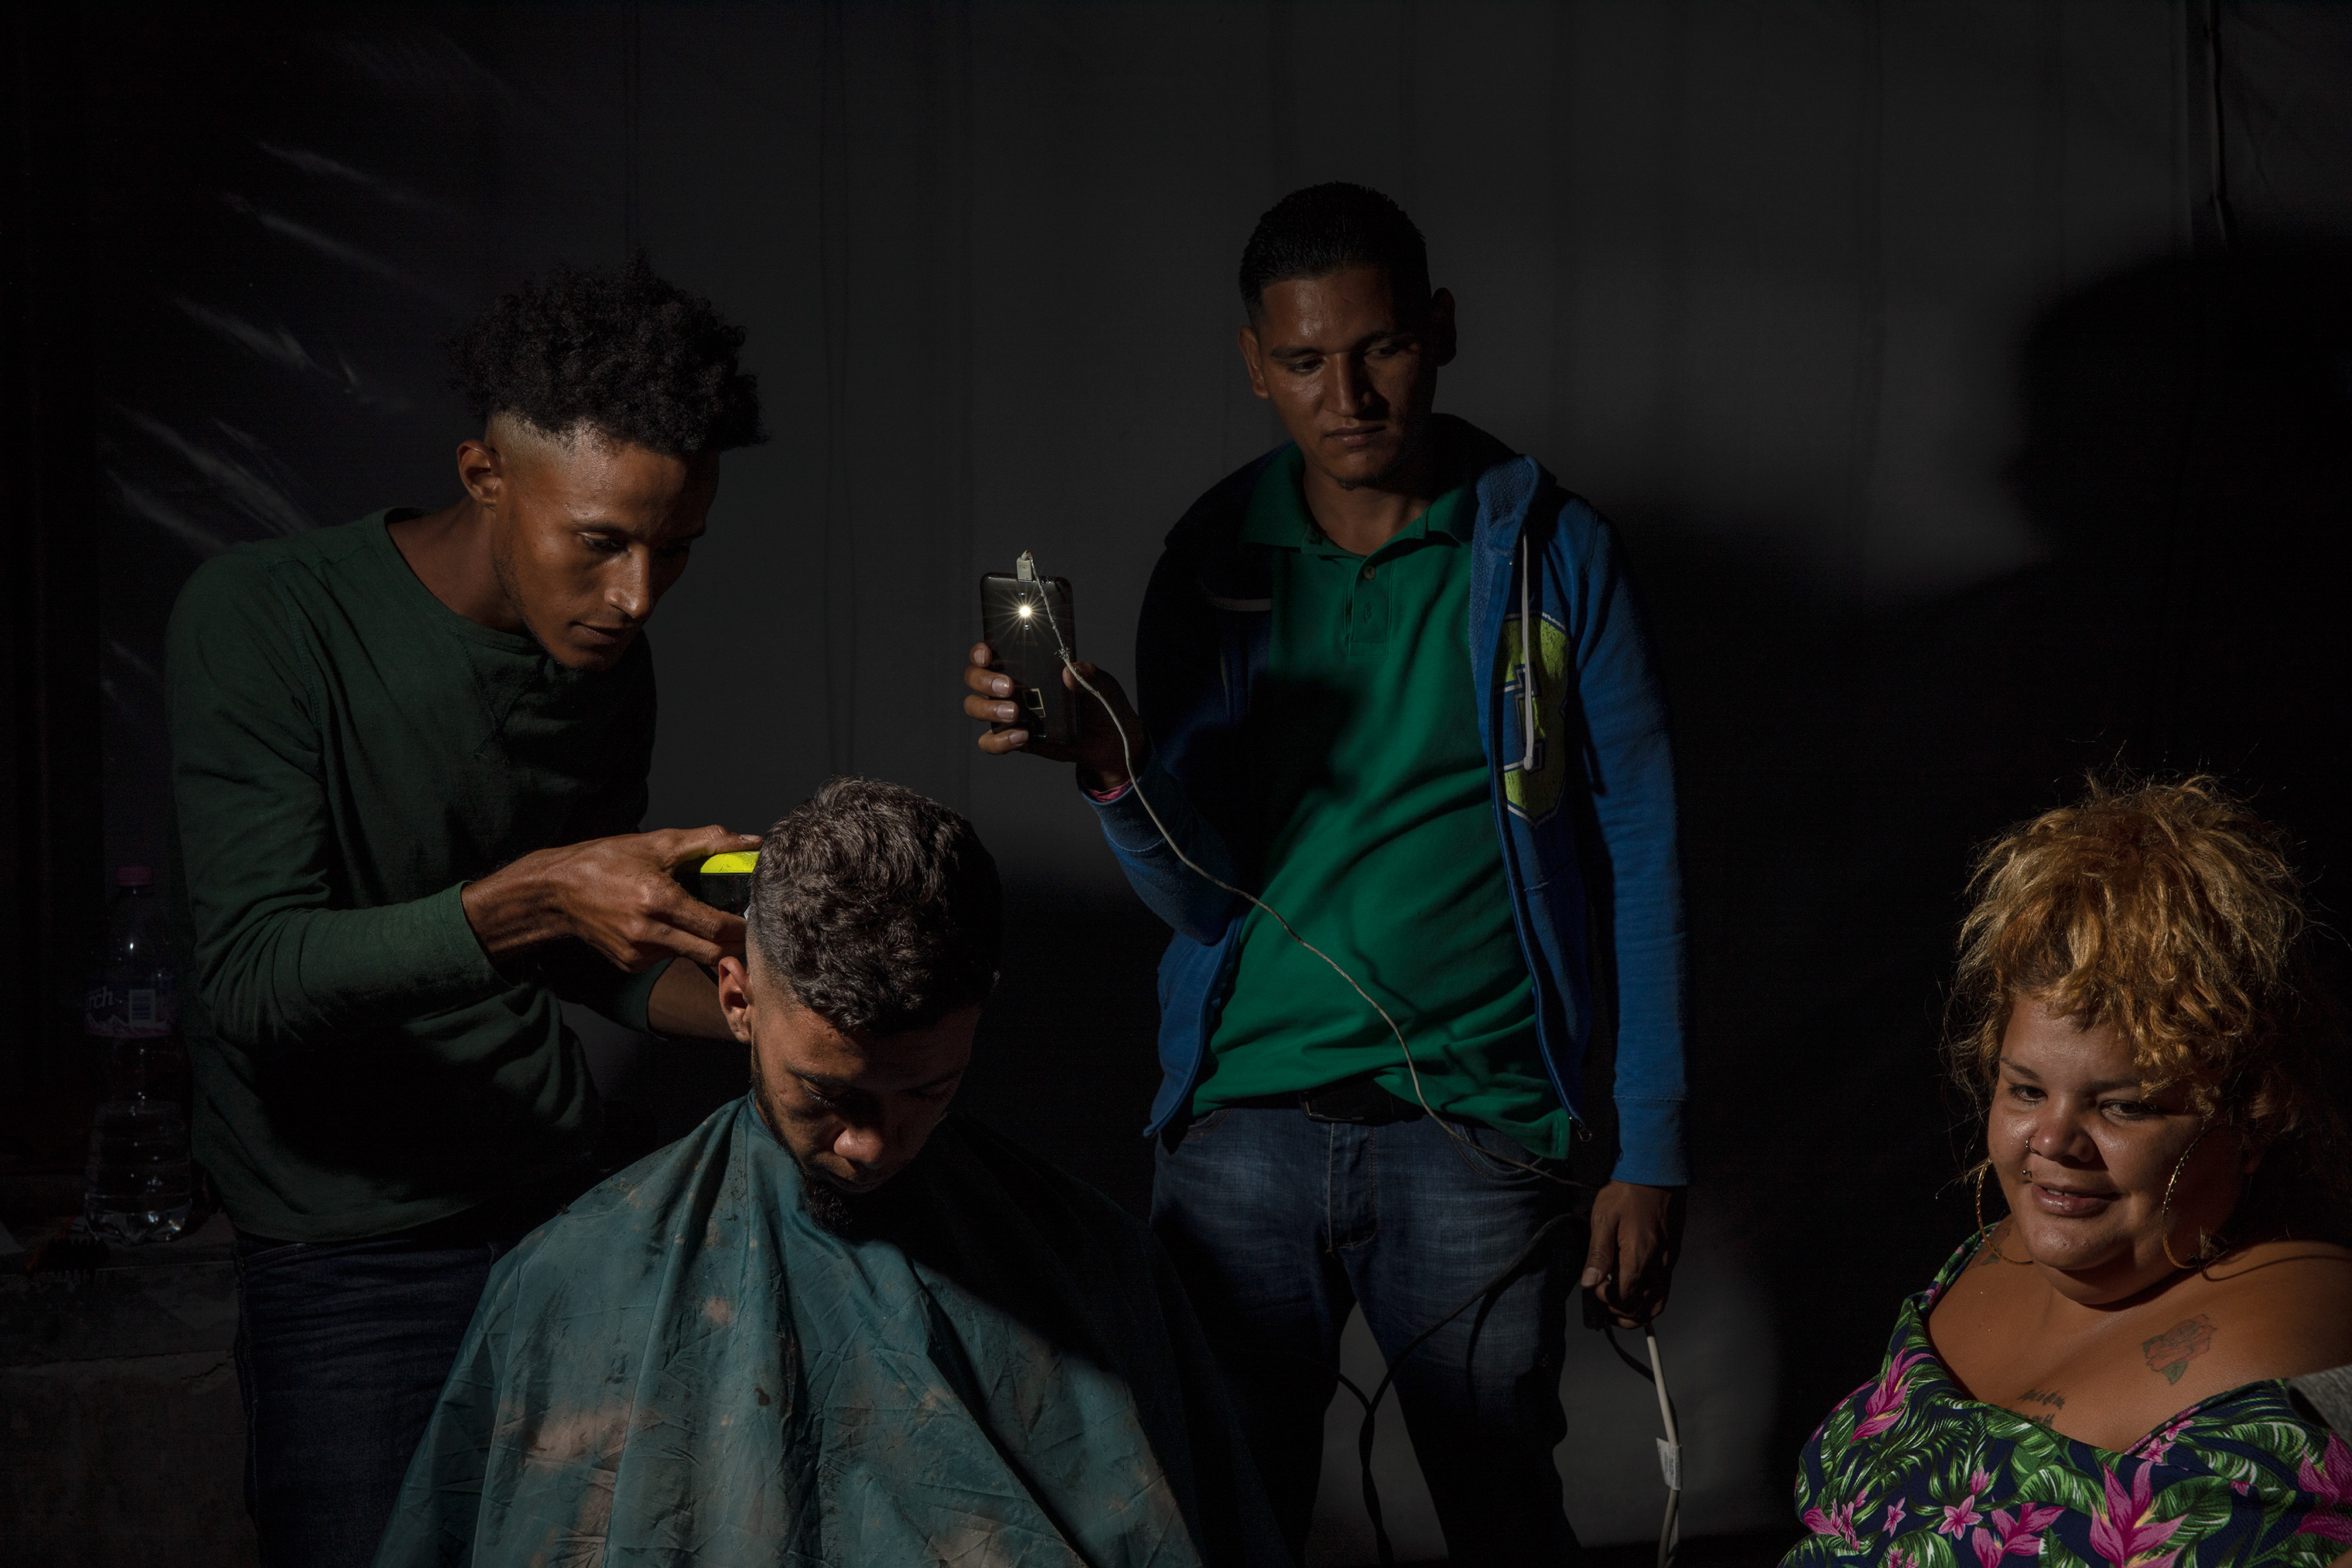 Ayyi Collins, 23, is a barber from Roatán, Honduras at the Jesus Martinez stadium on Nov. 7, 2018. He and his wife left Honduras, where he was a taxi driver, because of the terrible economy. He charges 30 pesos ($1.50) to people in the caravan for a haircut. He said,  You shouldn't believe that everyone here is a bad person. We want to find a better life and we want new opportunities to change the course of history.